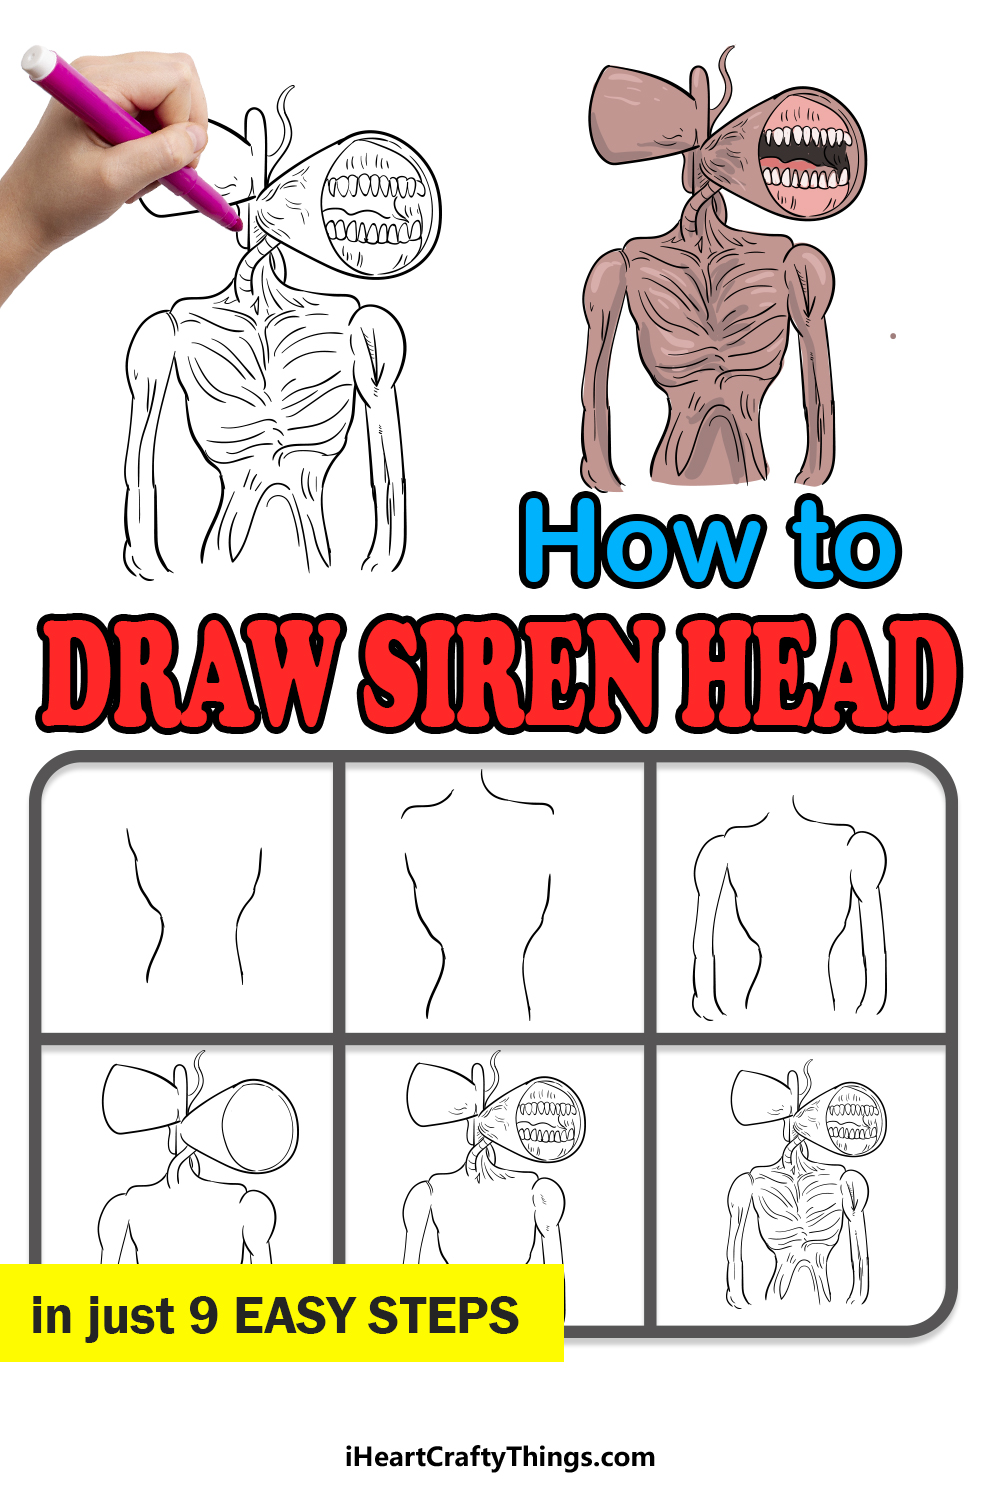 how to draw siren head in 9 easy steps